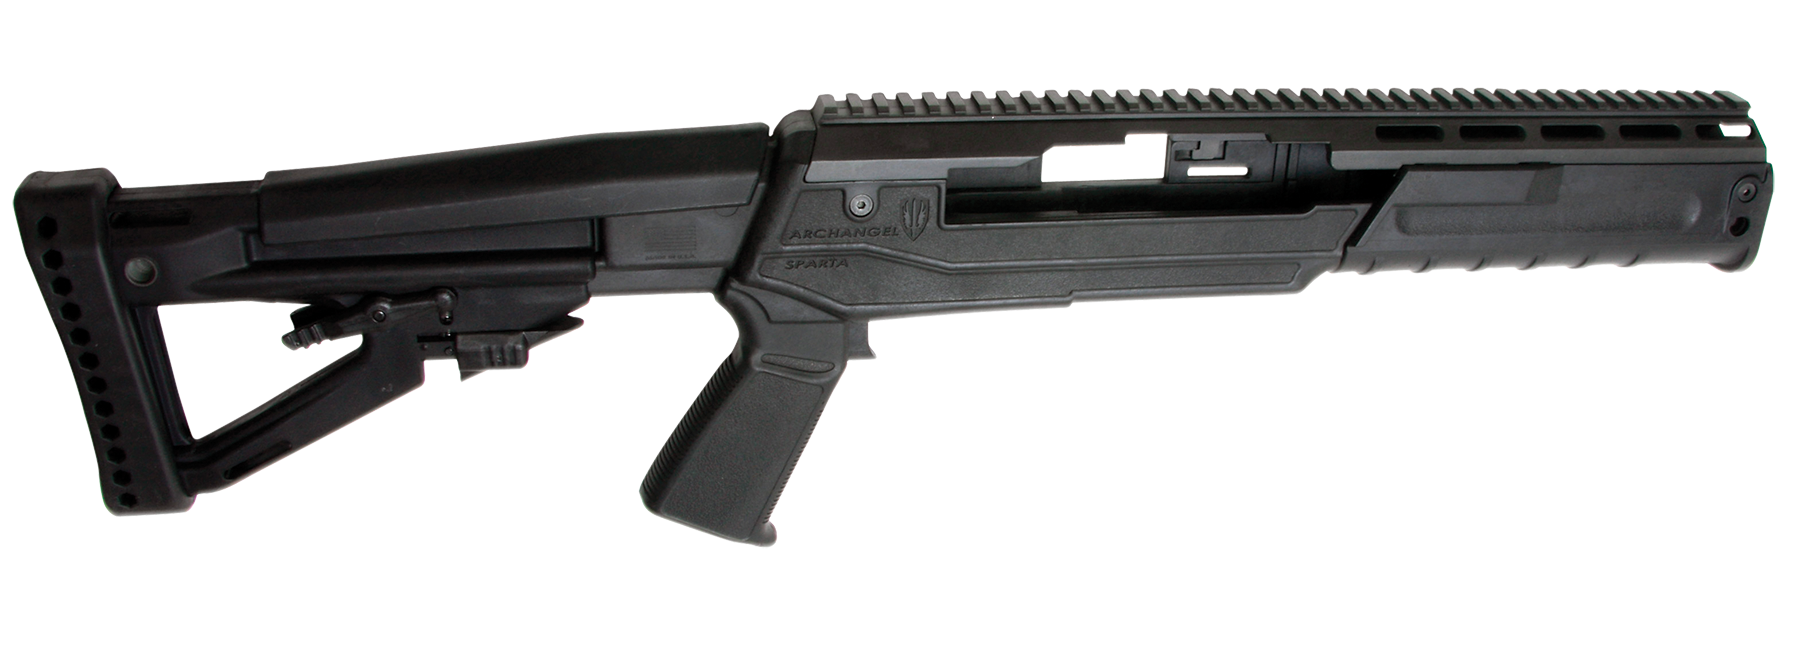 Archangel AA1430 Sparta Rifle Aluminum Black